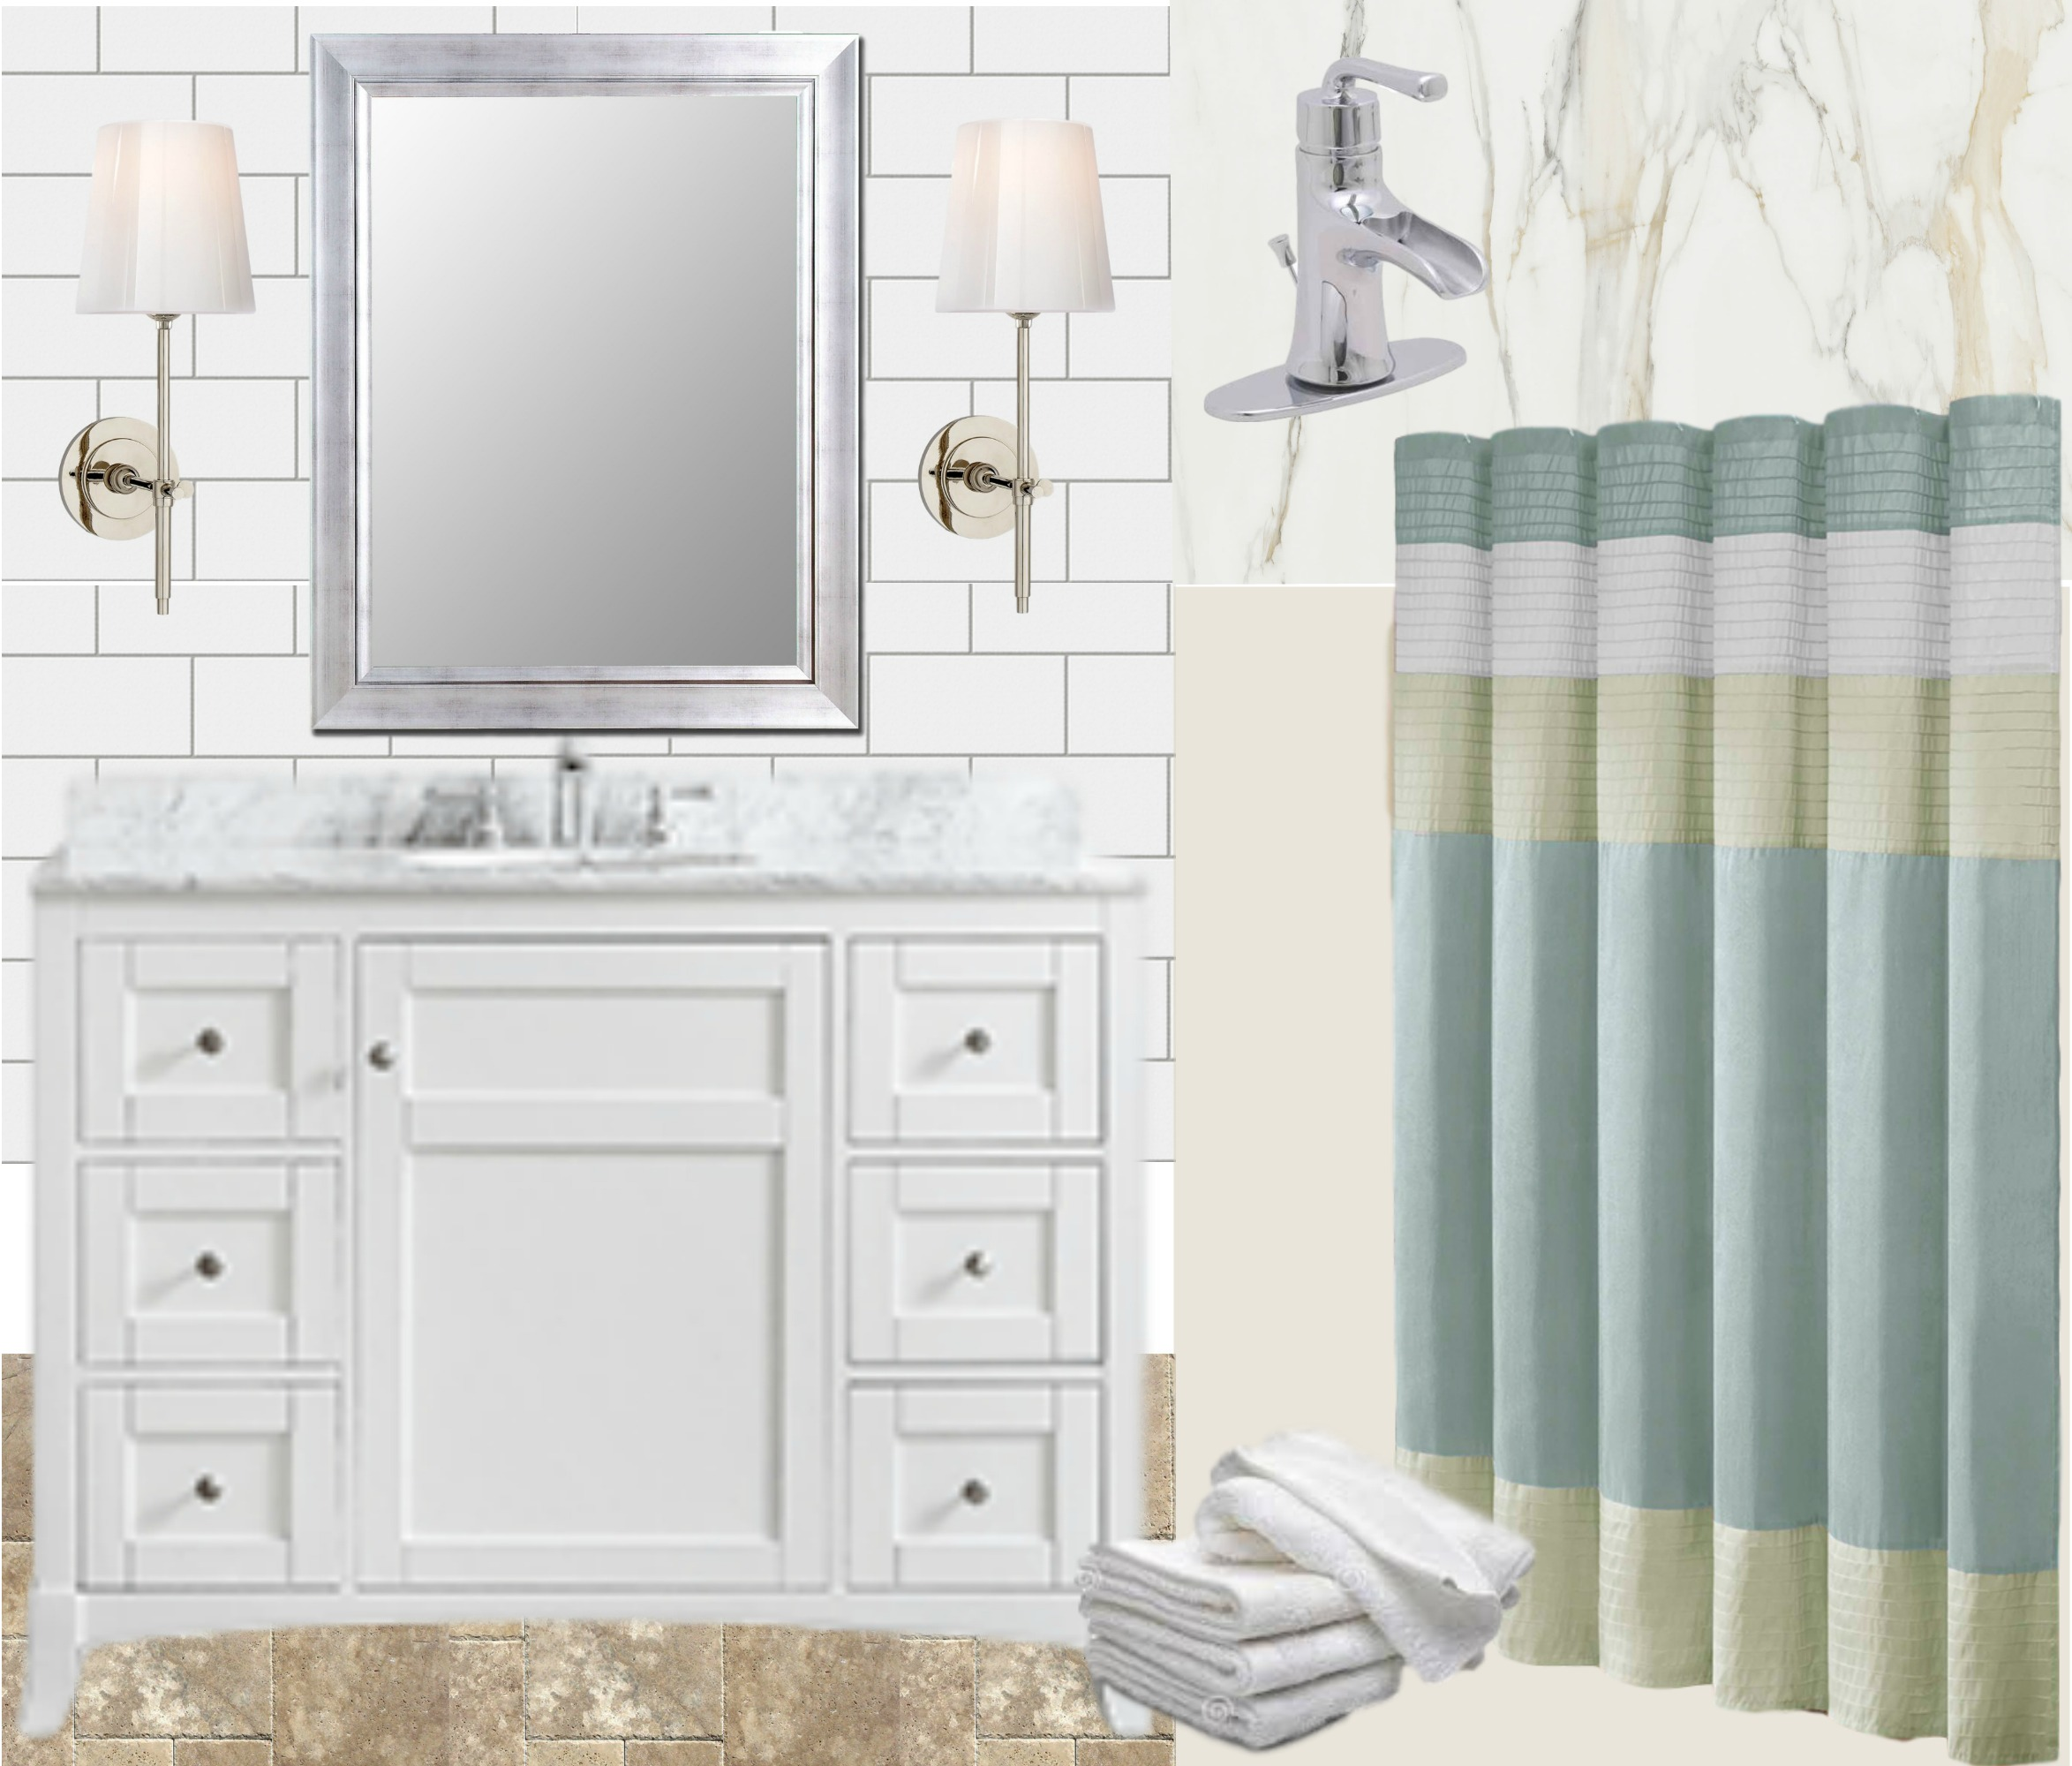 Guest Bathroom Makeover Design Mood Board - The Everyday Home